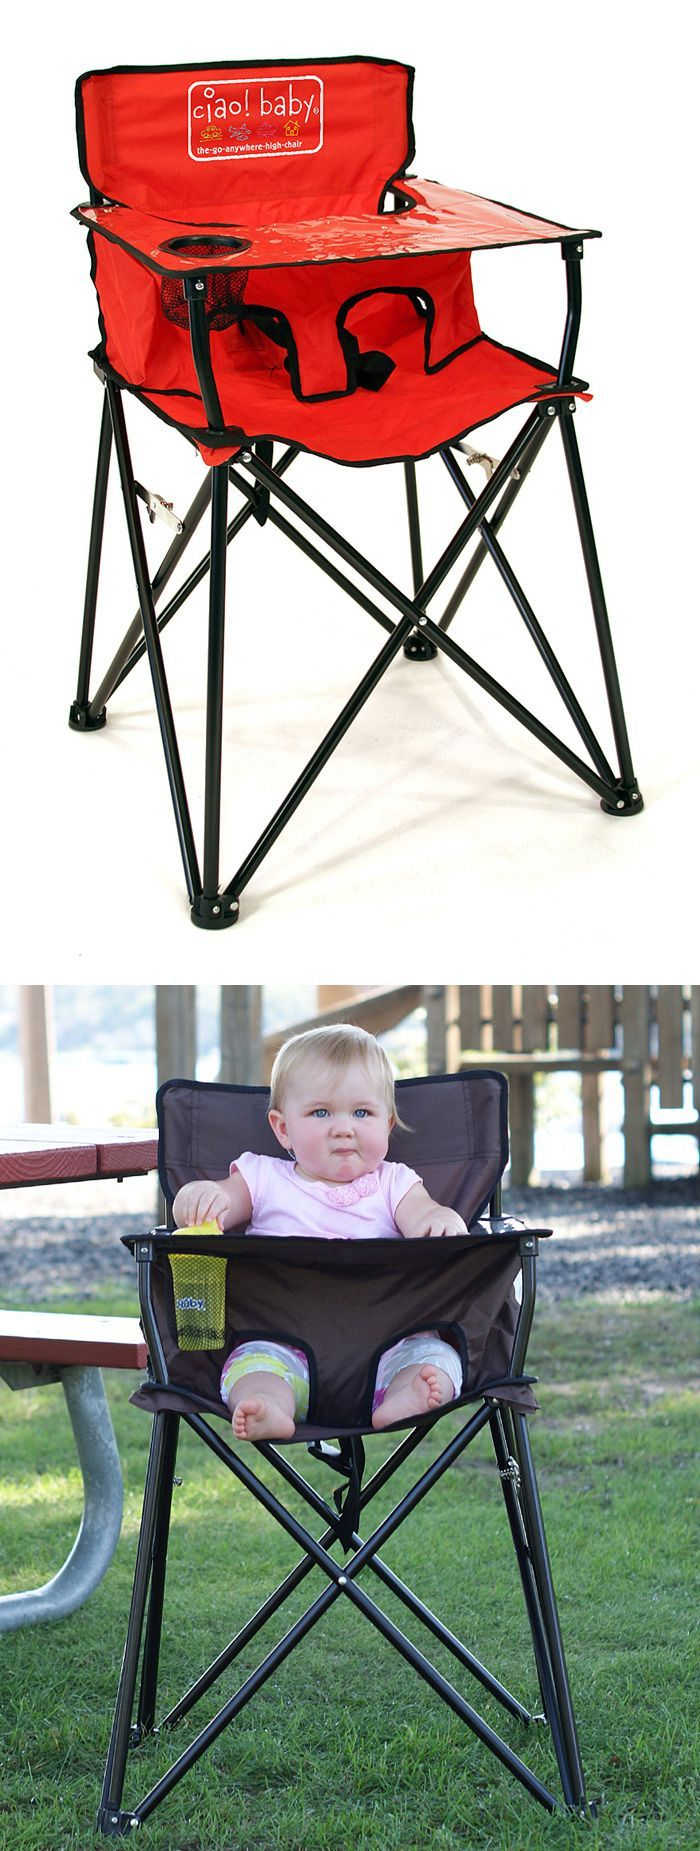 Baby Portable Travel High Chair   Folds Up Into A Carrying Bag Just Like A  Camp.